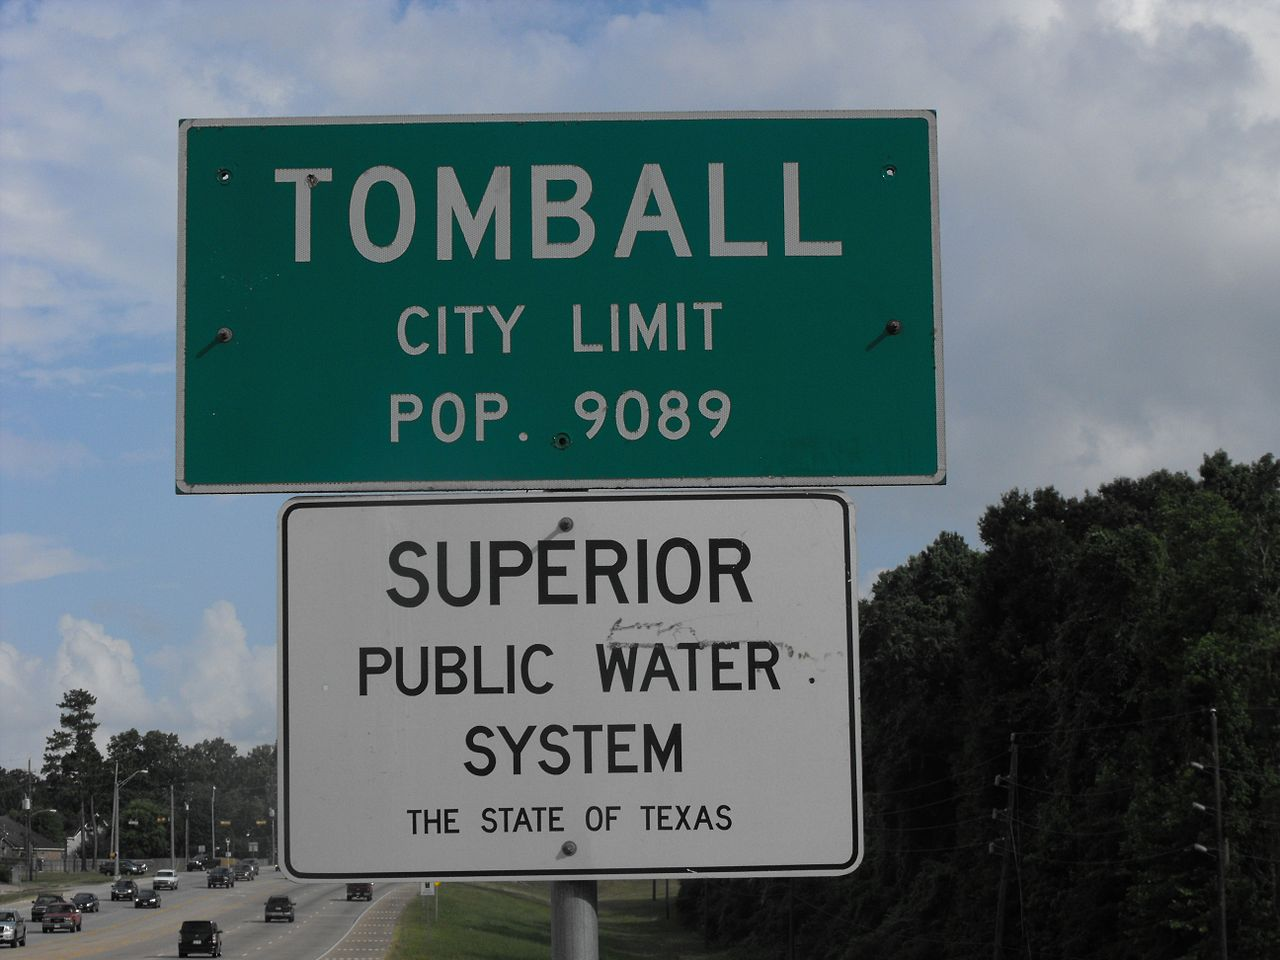 To be fair, it's not all sports. Some cities, such as Tomball, Texas, publicize other interesting facts about themselves.